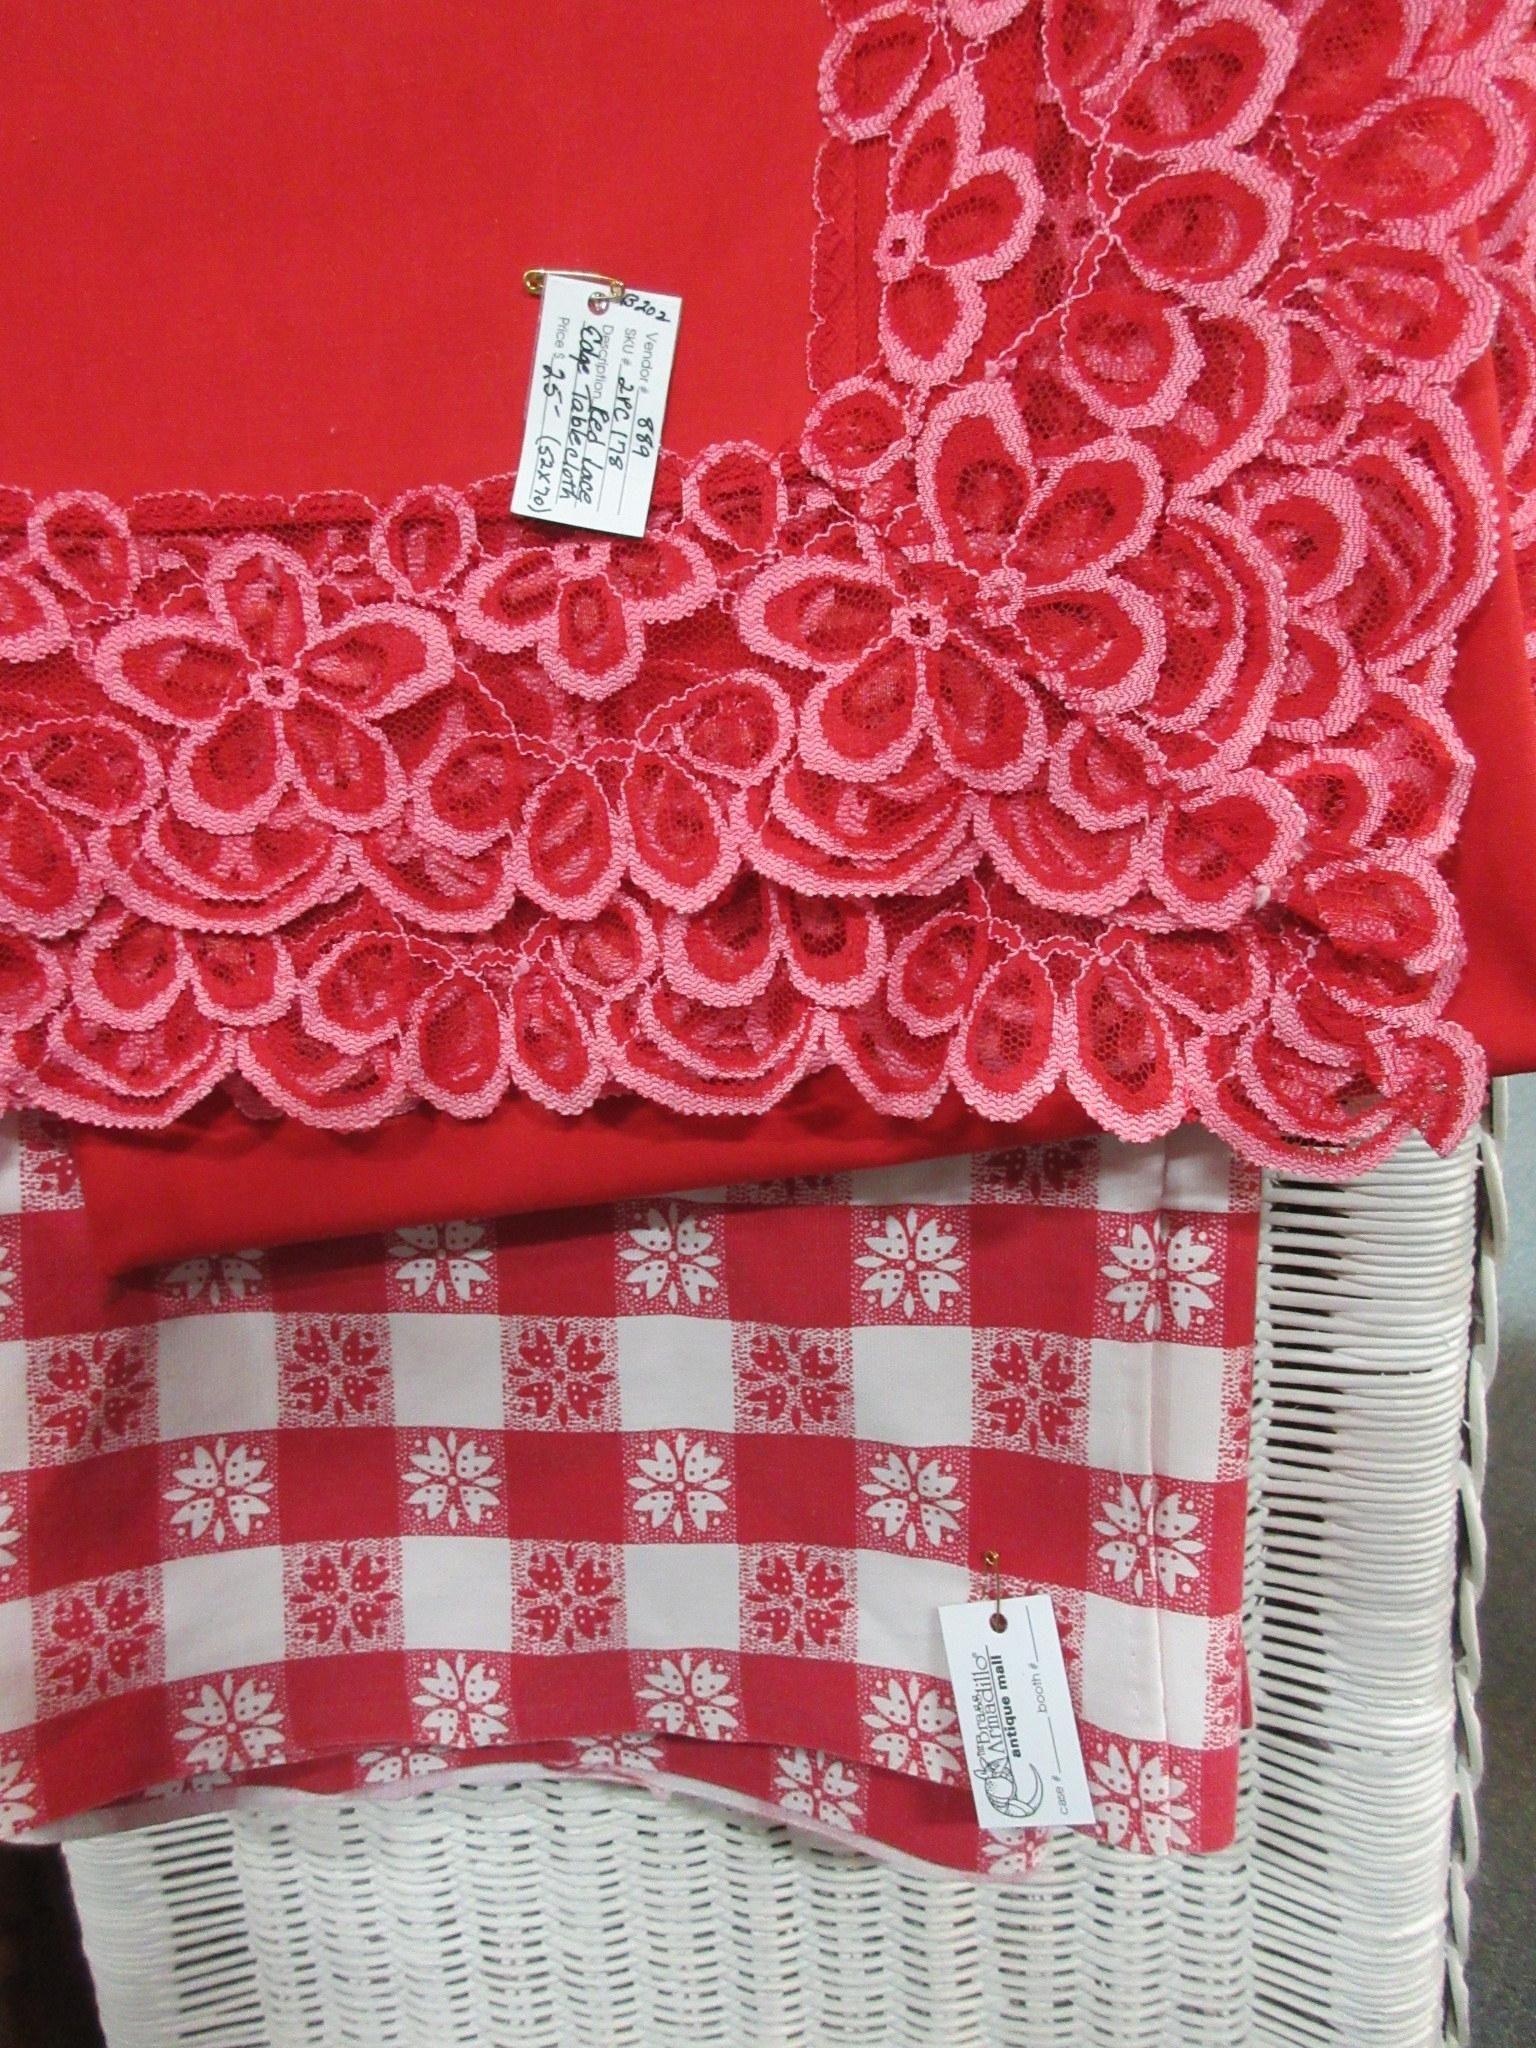 Vintage Tablecloths, Perfect For V Day! From Vendor 889 In Booth 202.